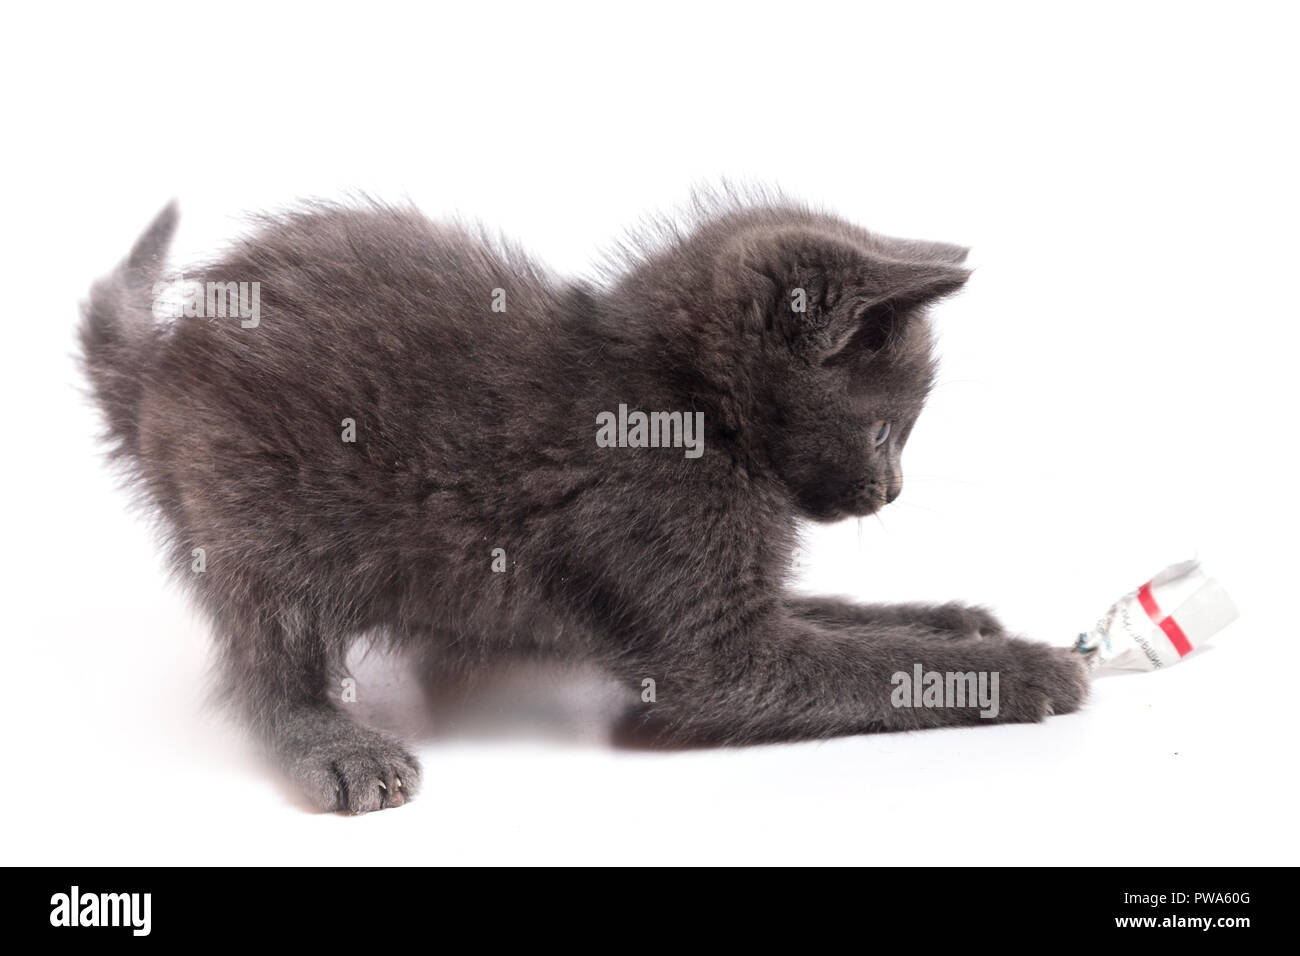 The gray kitten plays with a piece of paper. A close up, it is isolated on a white background - Stock Image